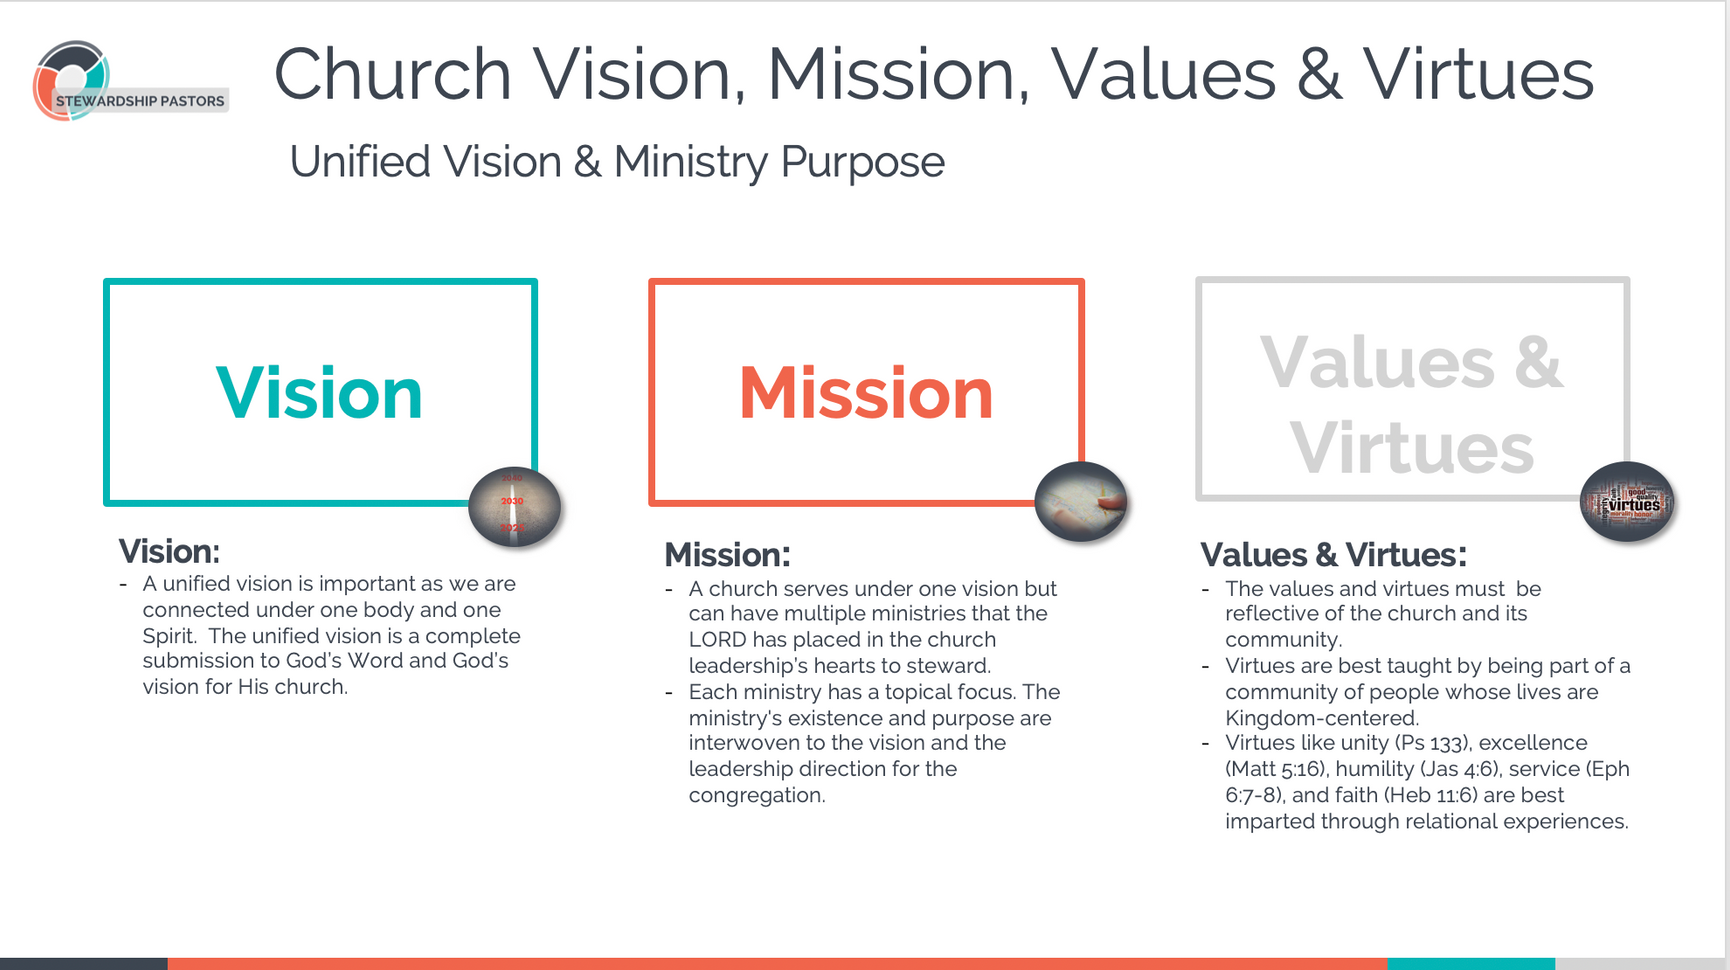 Vision, Mission, Values & Virtues